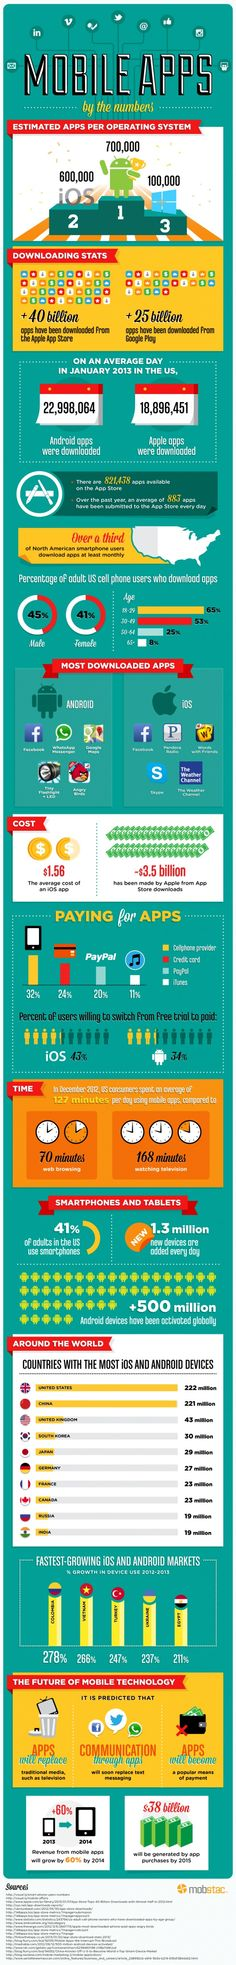 Los Números tras las Apps / Mobile Apps by the Numbers